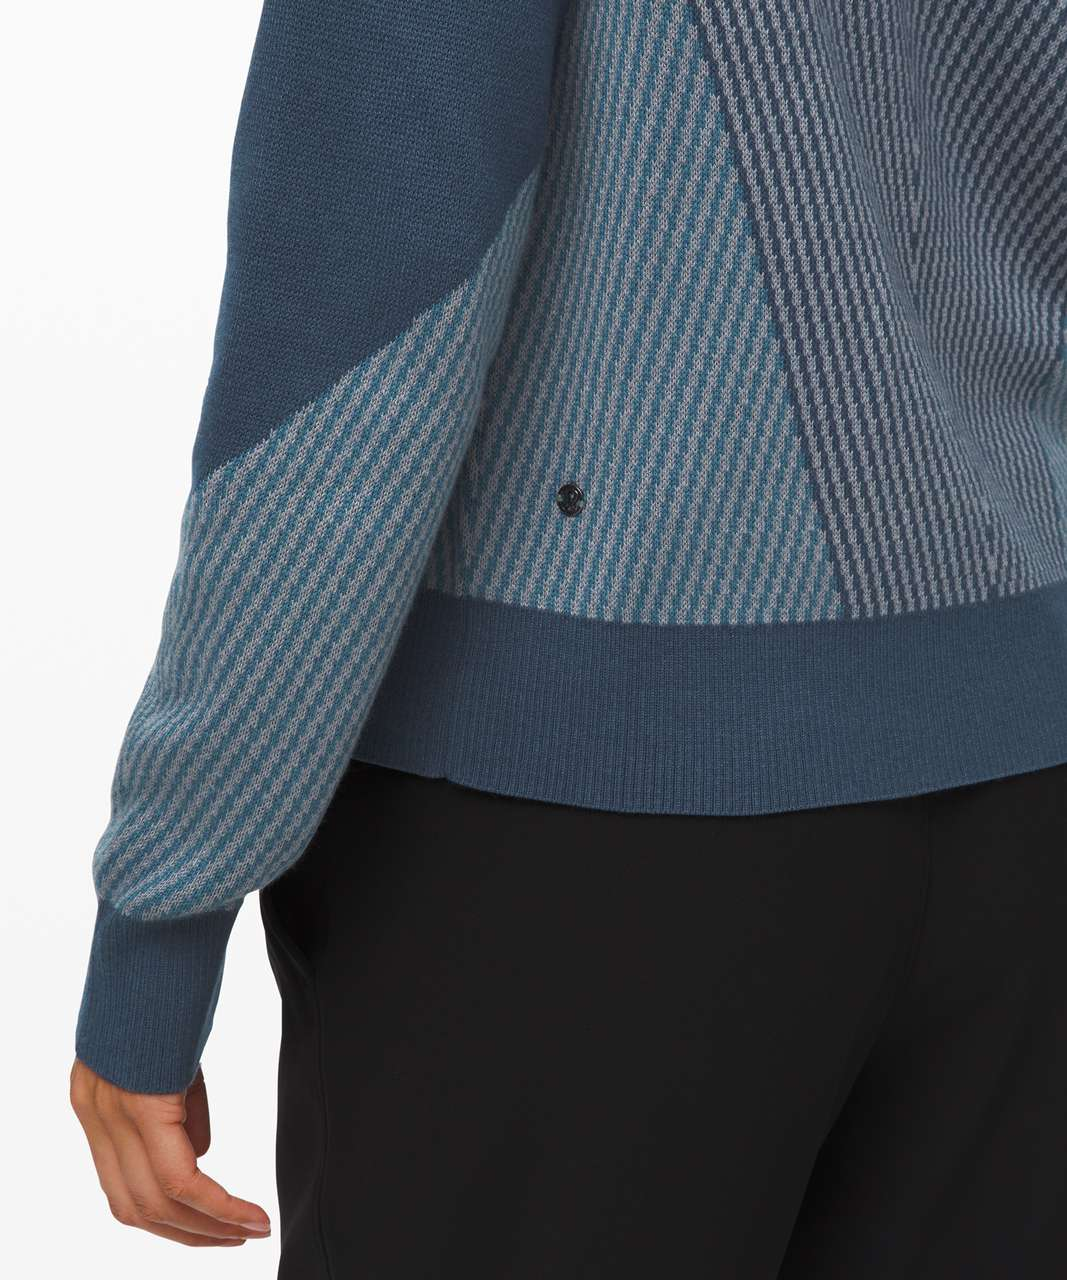 Lululemon Here for Serenity Sweater - Night Diver / Blue Charcoal / Petrol Blue